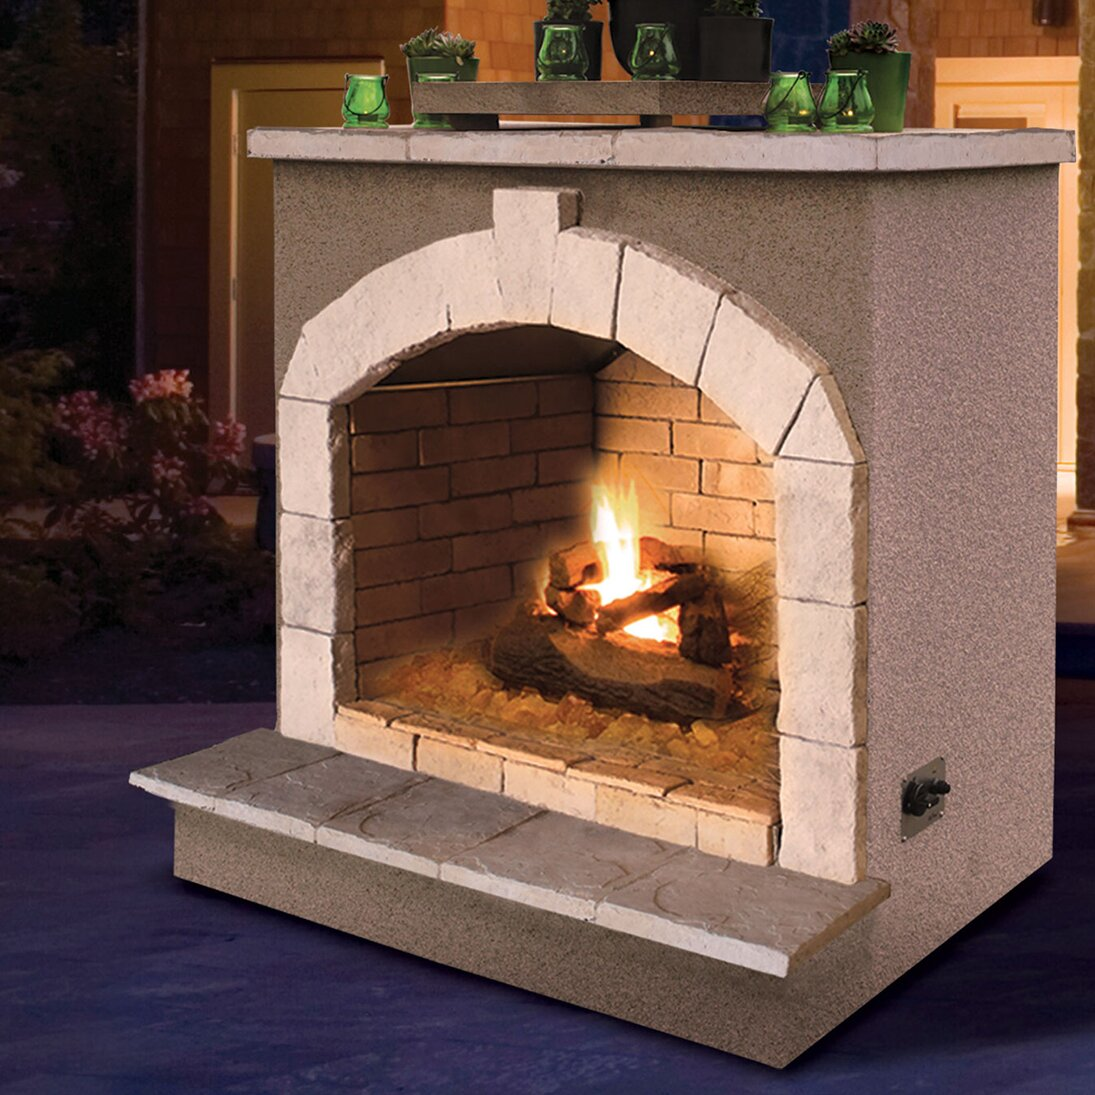 CalFlame Propane Gas Outdoor Fireplace & Reviews | Wayfair